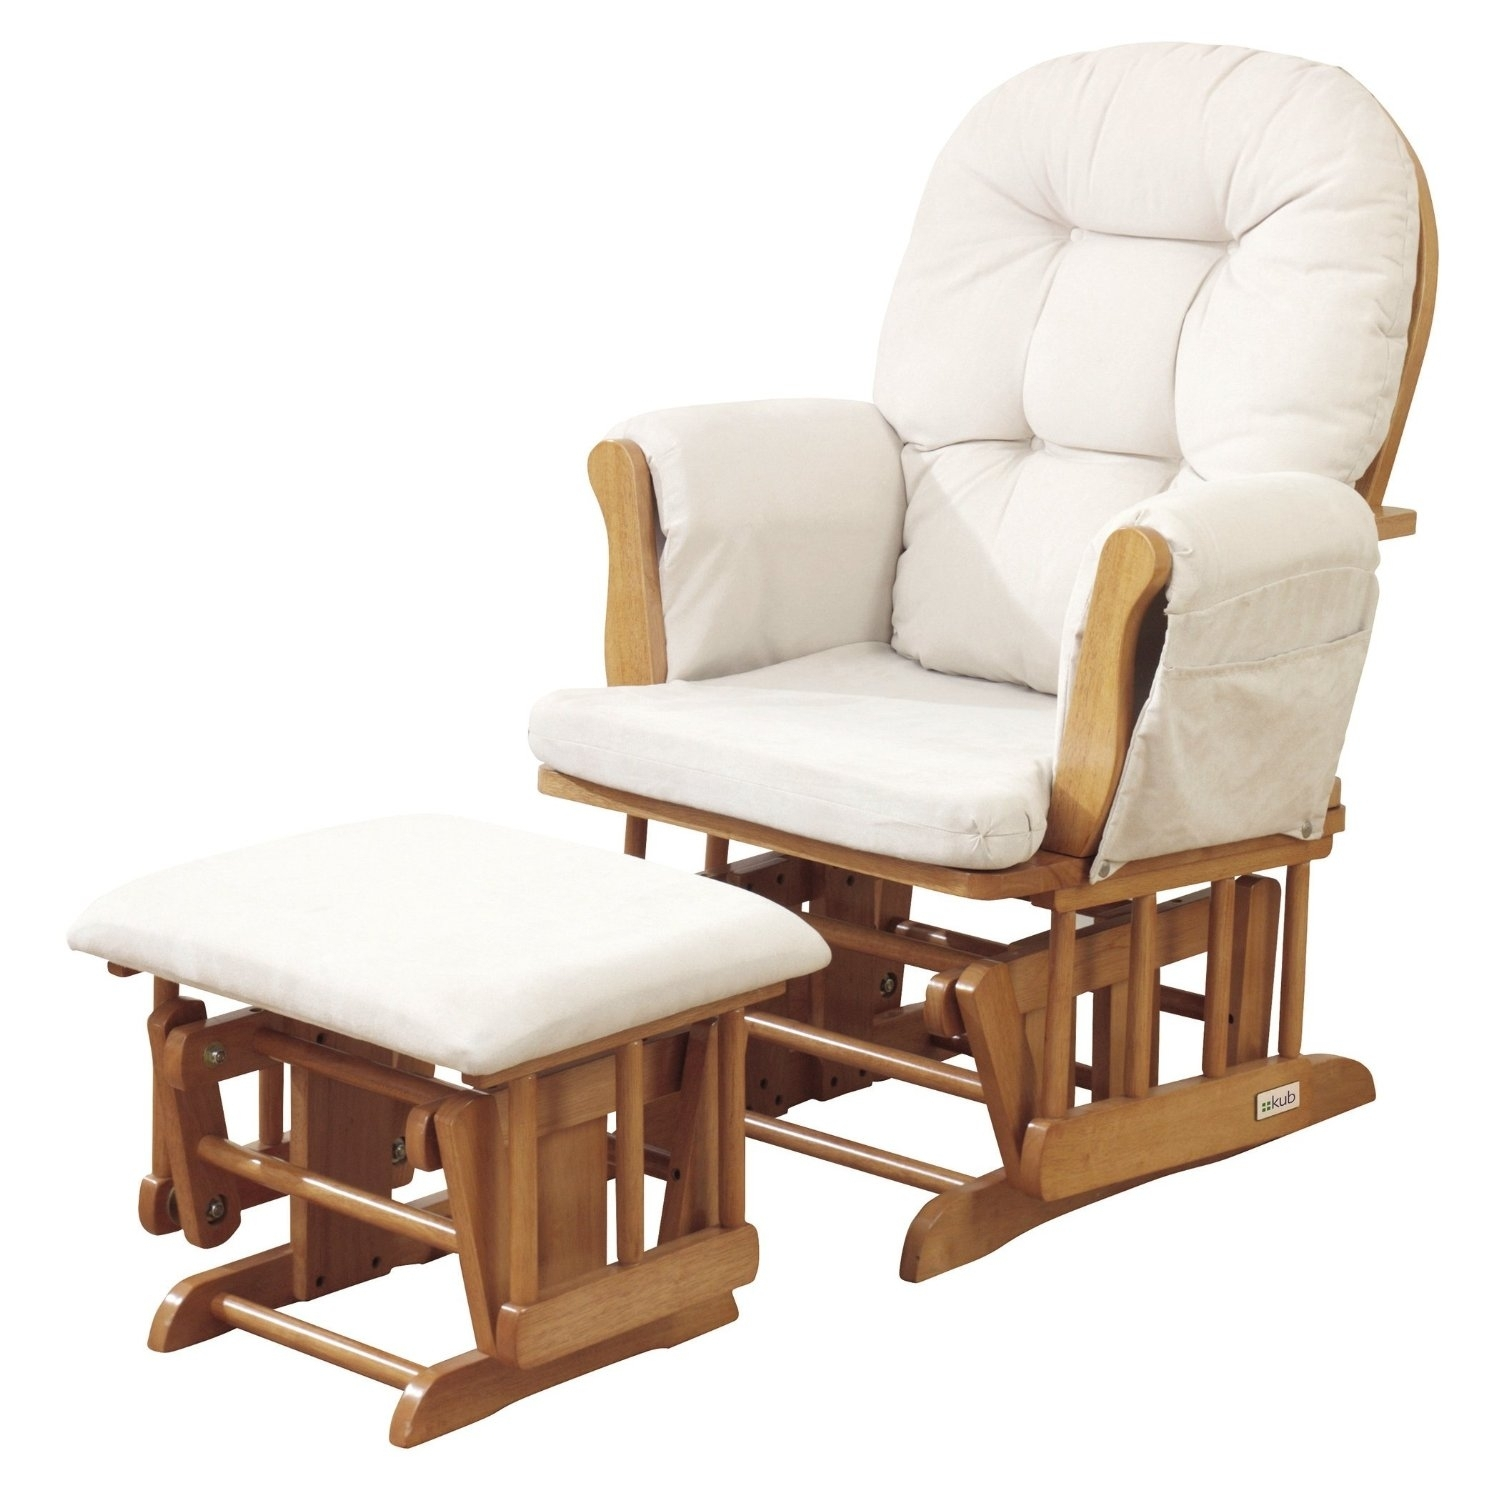 Inspiration about Glider Rocking Chairs Canadian Rc Willey Amazon Uk | Ovalasallista In Rocking Chairs With Ottoman (#11 of 15)